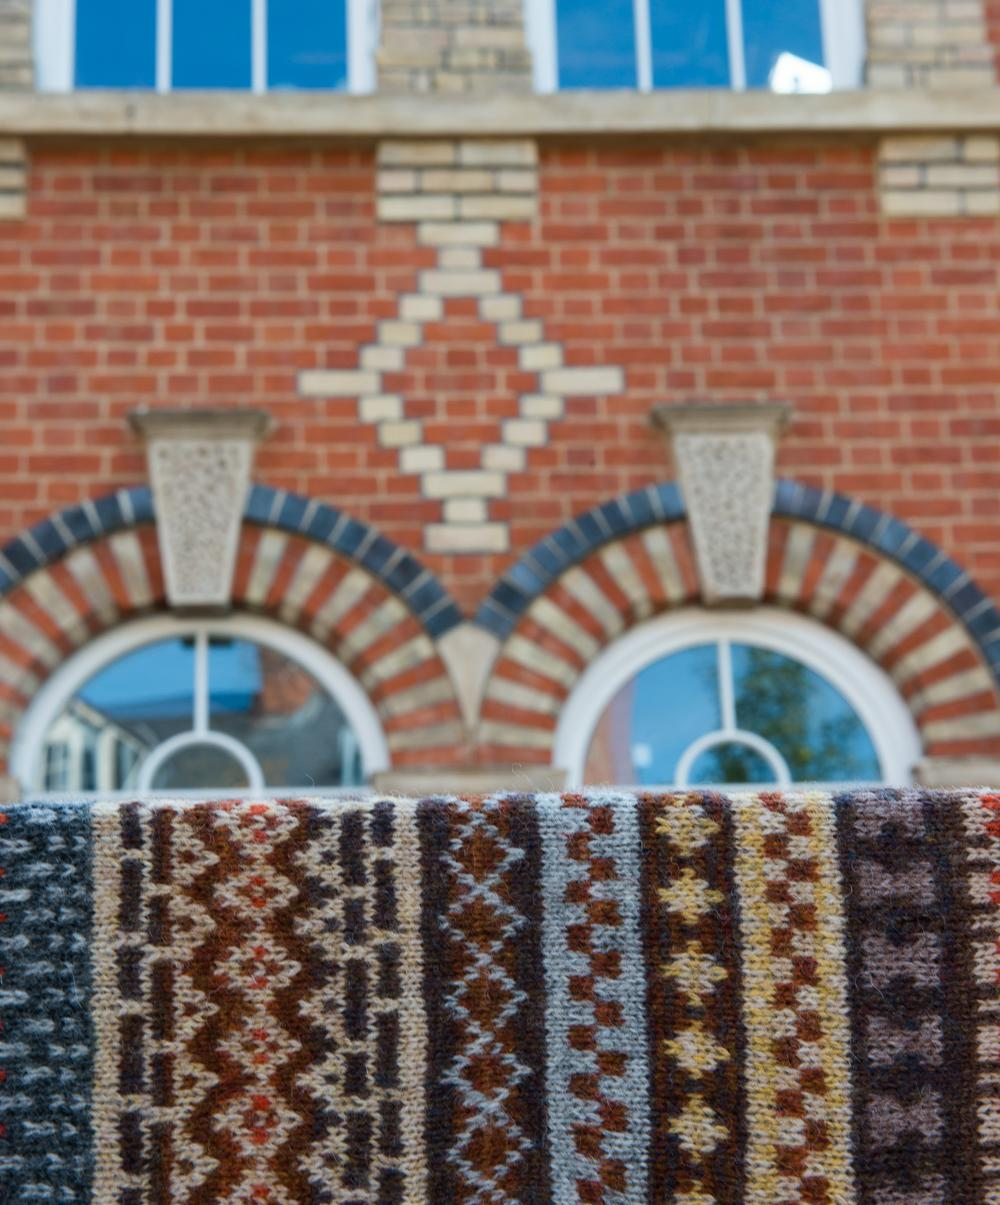 Polychromatic bricks of Reading presented along with stranded colourwork interpretation of polychromatic brick work